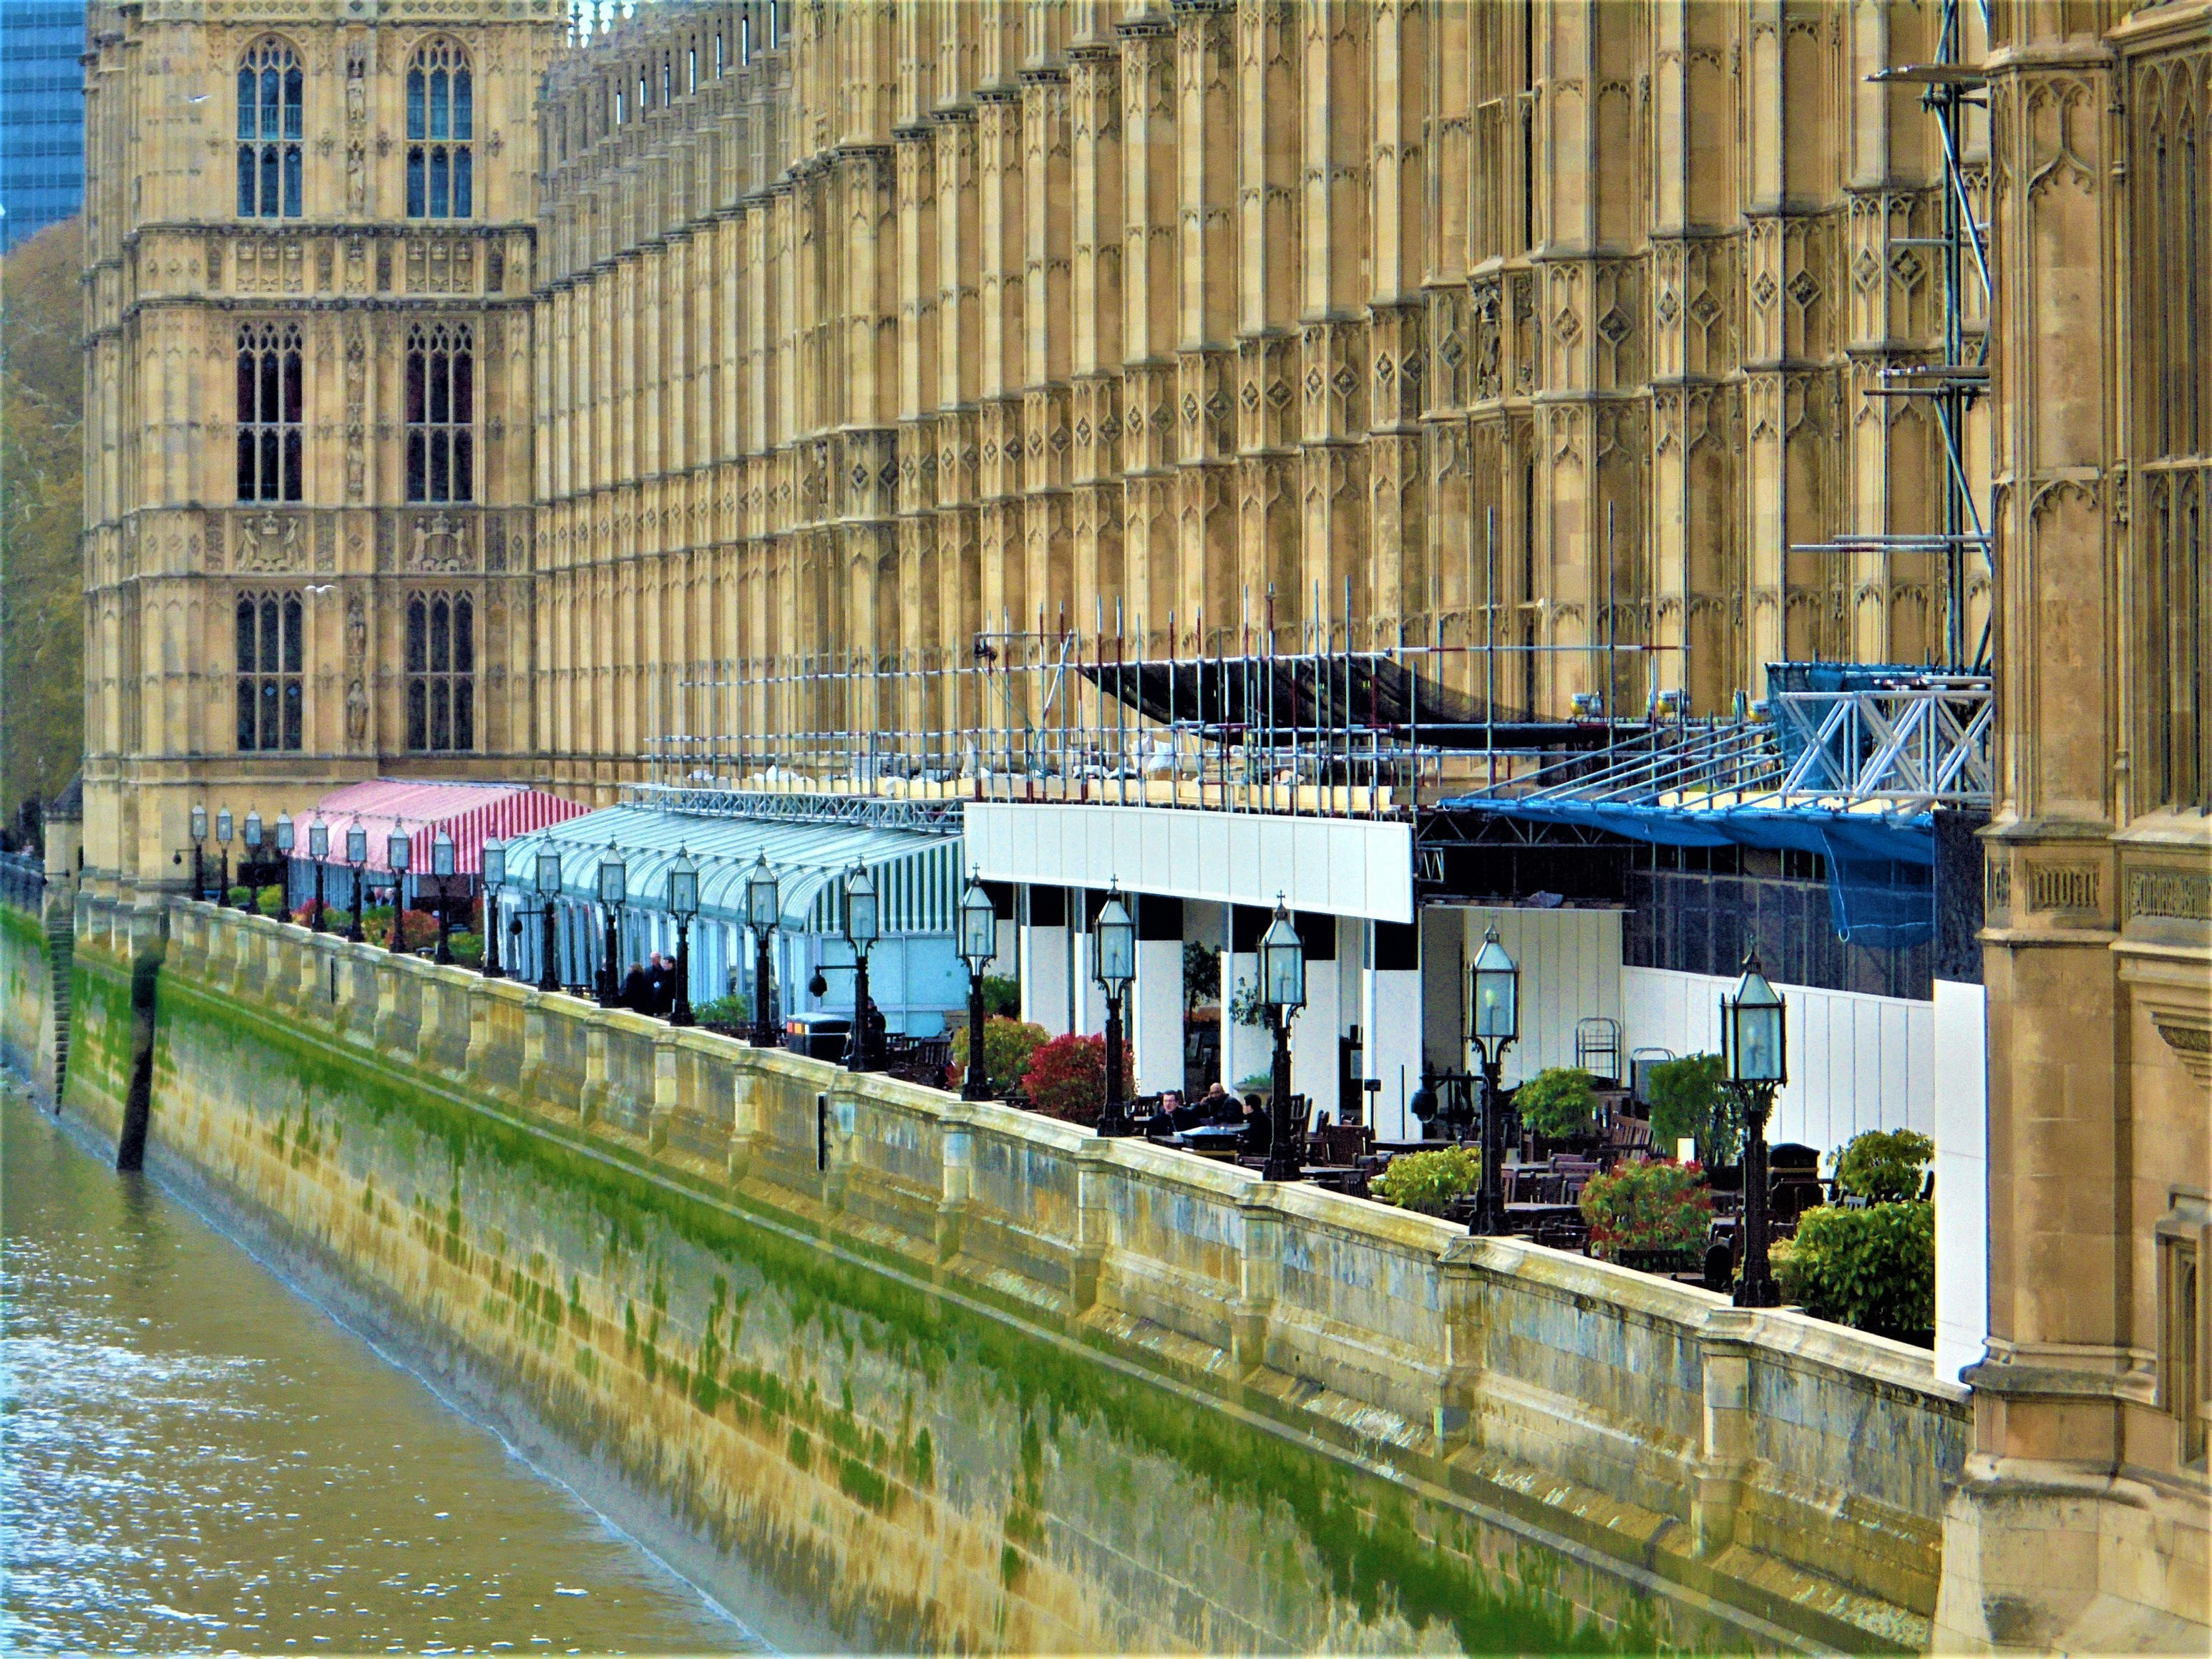 Terrace Pavilion, House of Commons, Houses of Parliament, Westminster, London